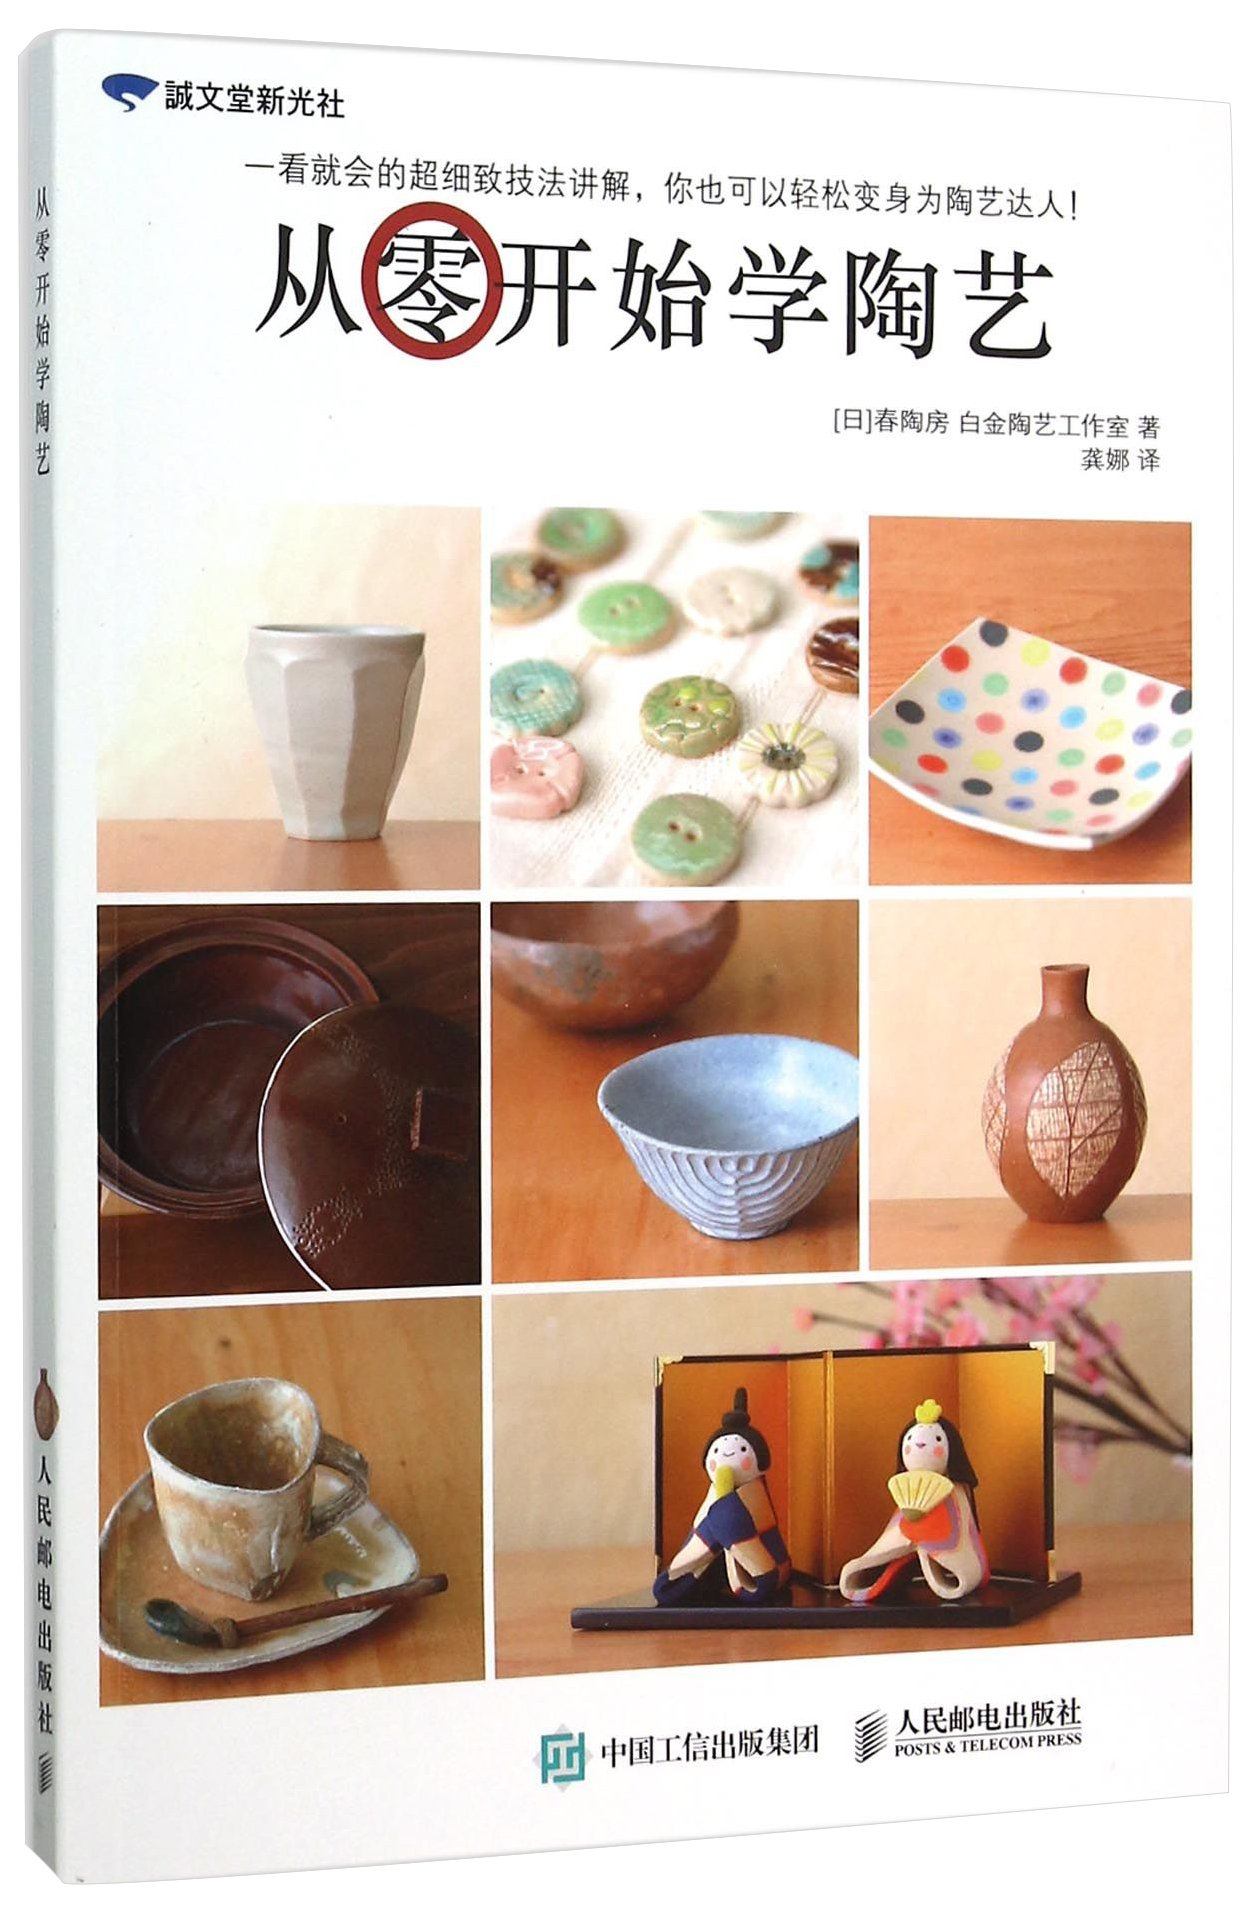 Learning Pottery from Scratch (Chinese Edition) pdf epub